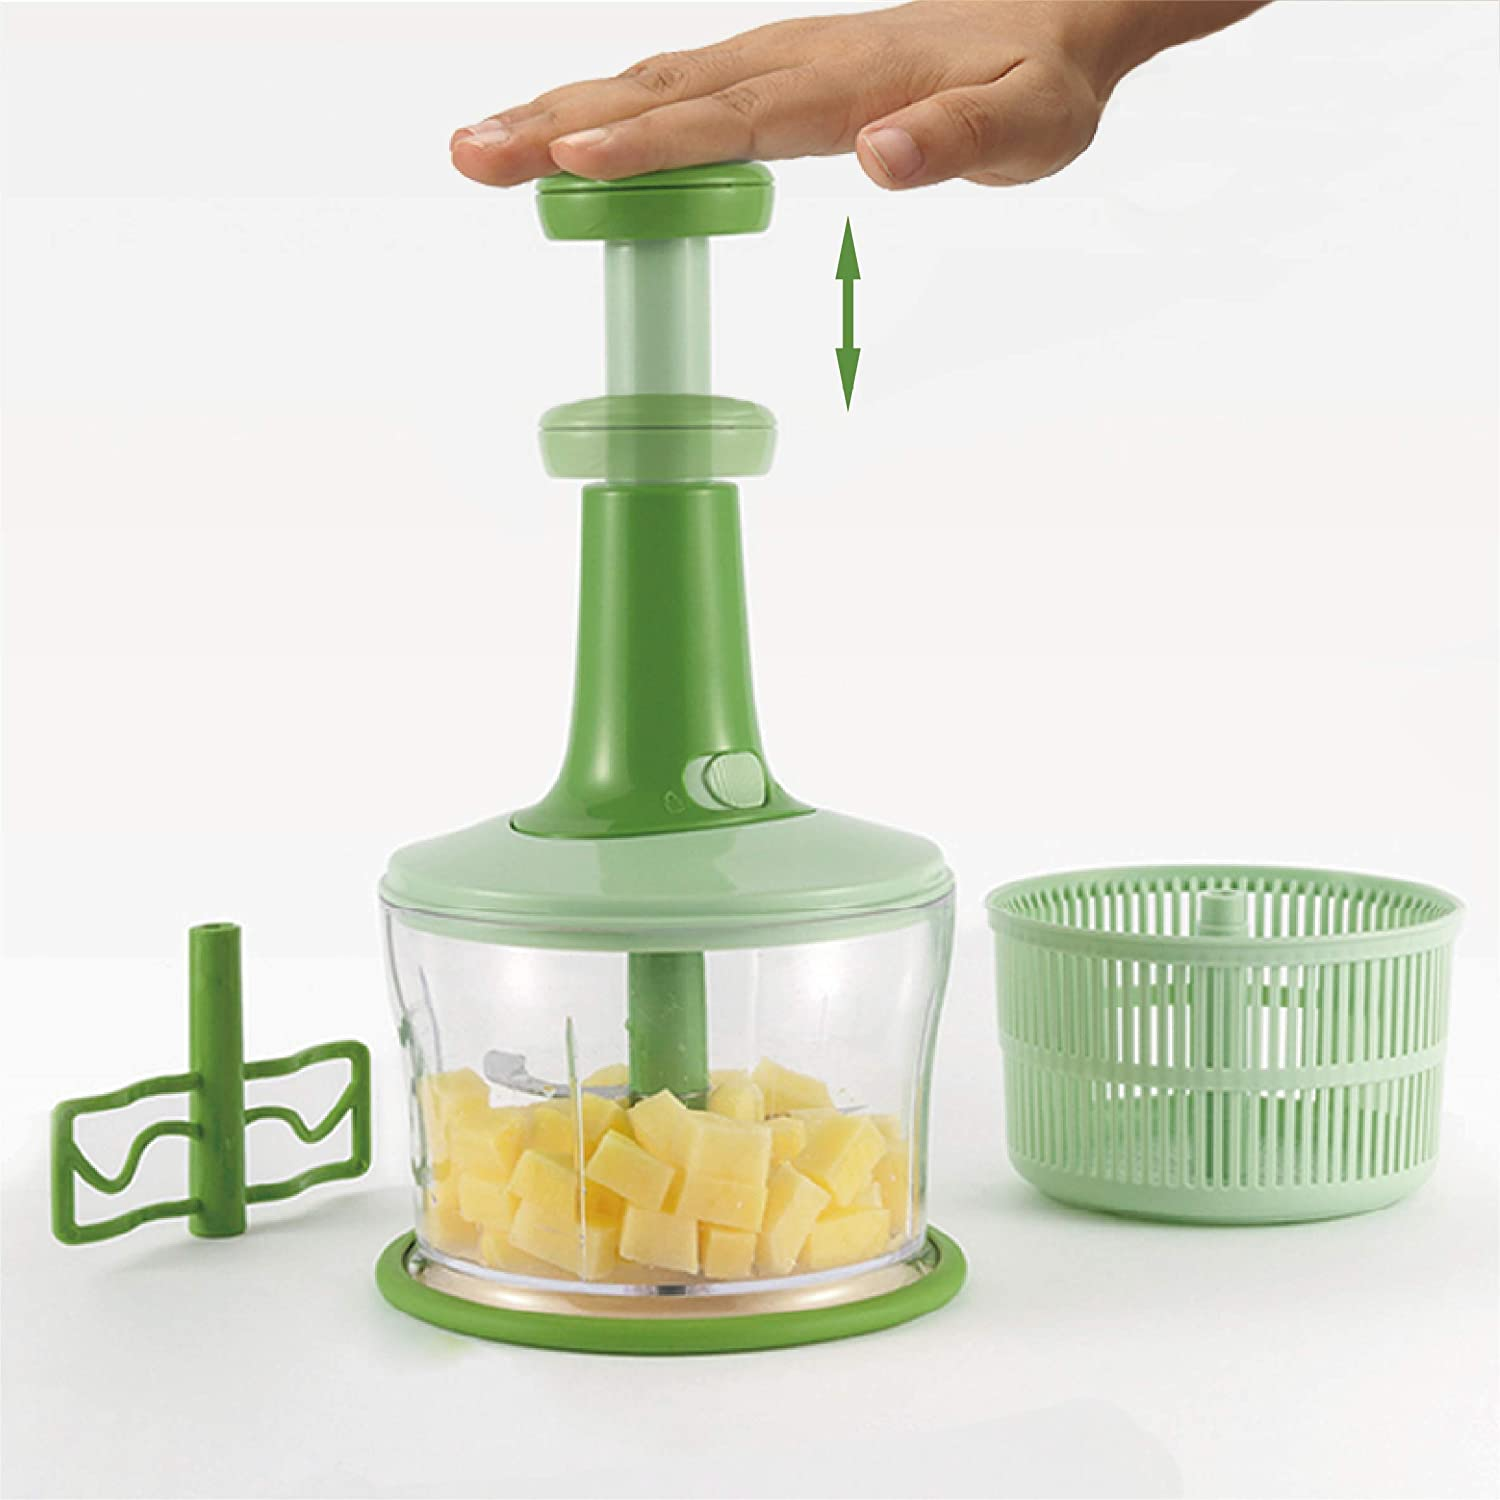 Food Chopper Handheld-Hand Food Chopper Large Cup Chop and Cut Fruits Vegetables Herbs Onions